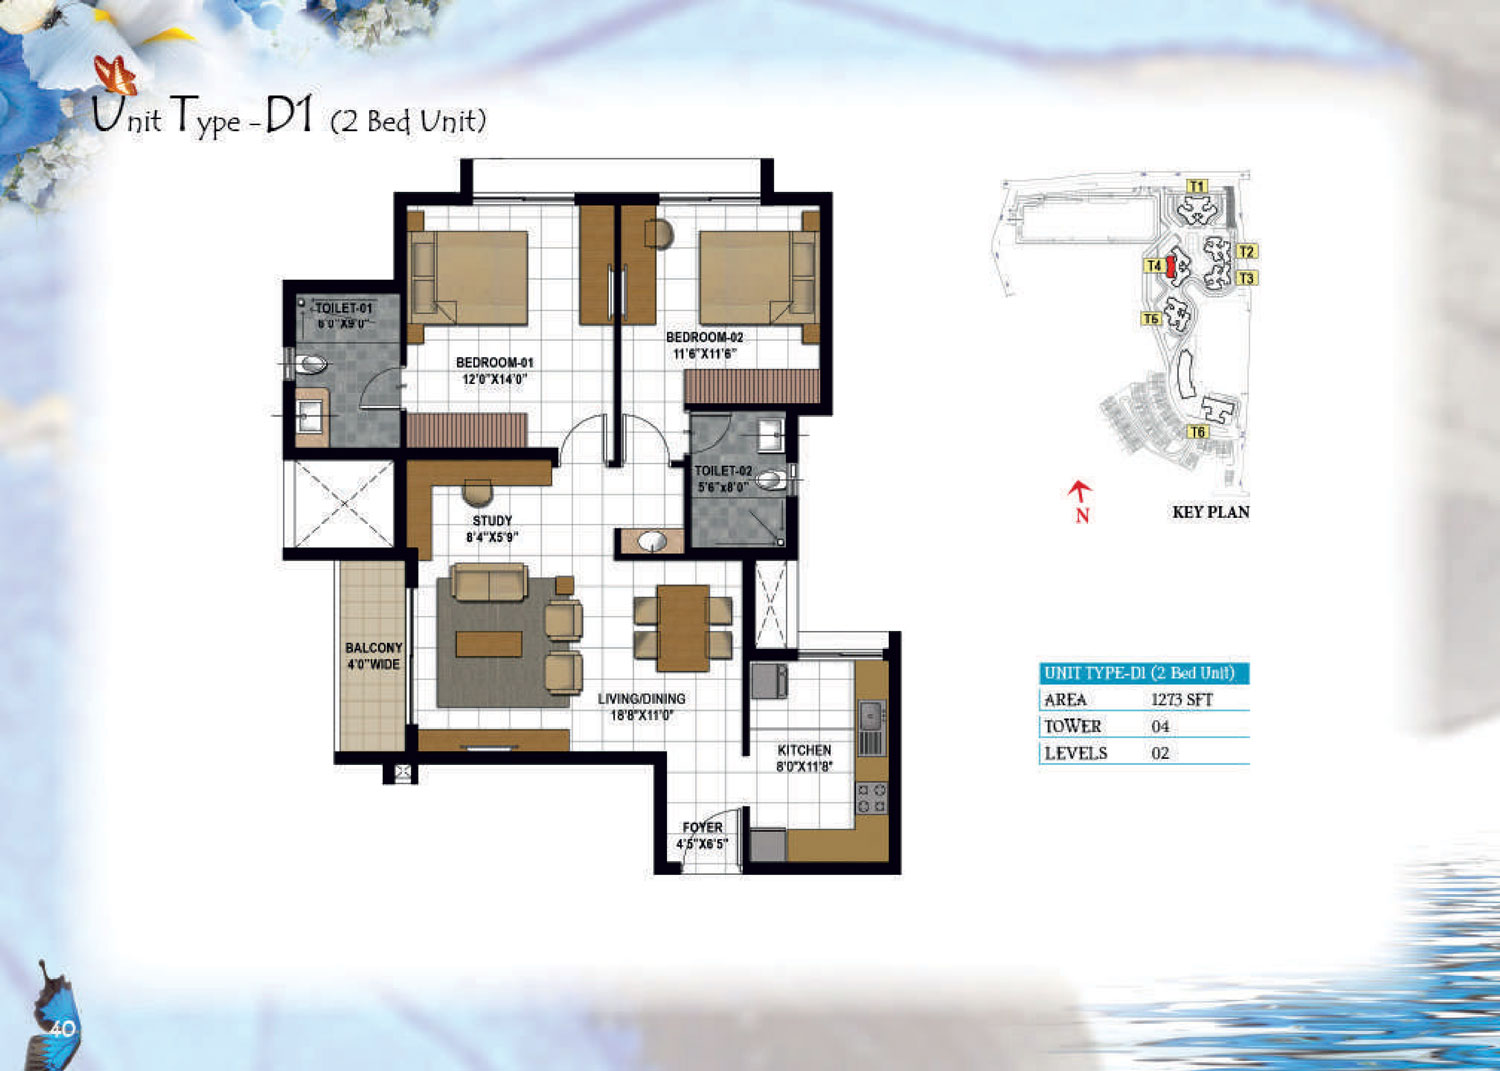 Type D1 - 1273 Sq Ft